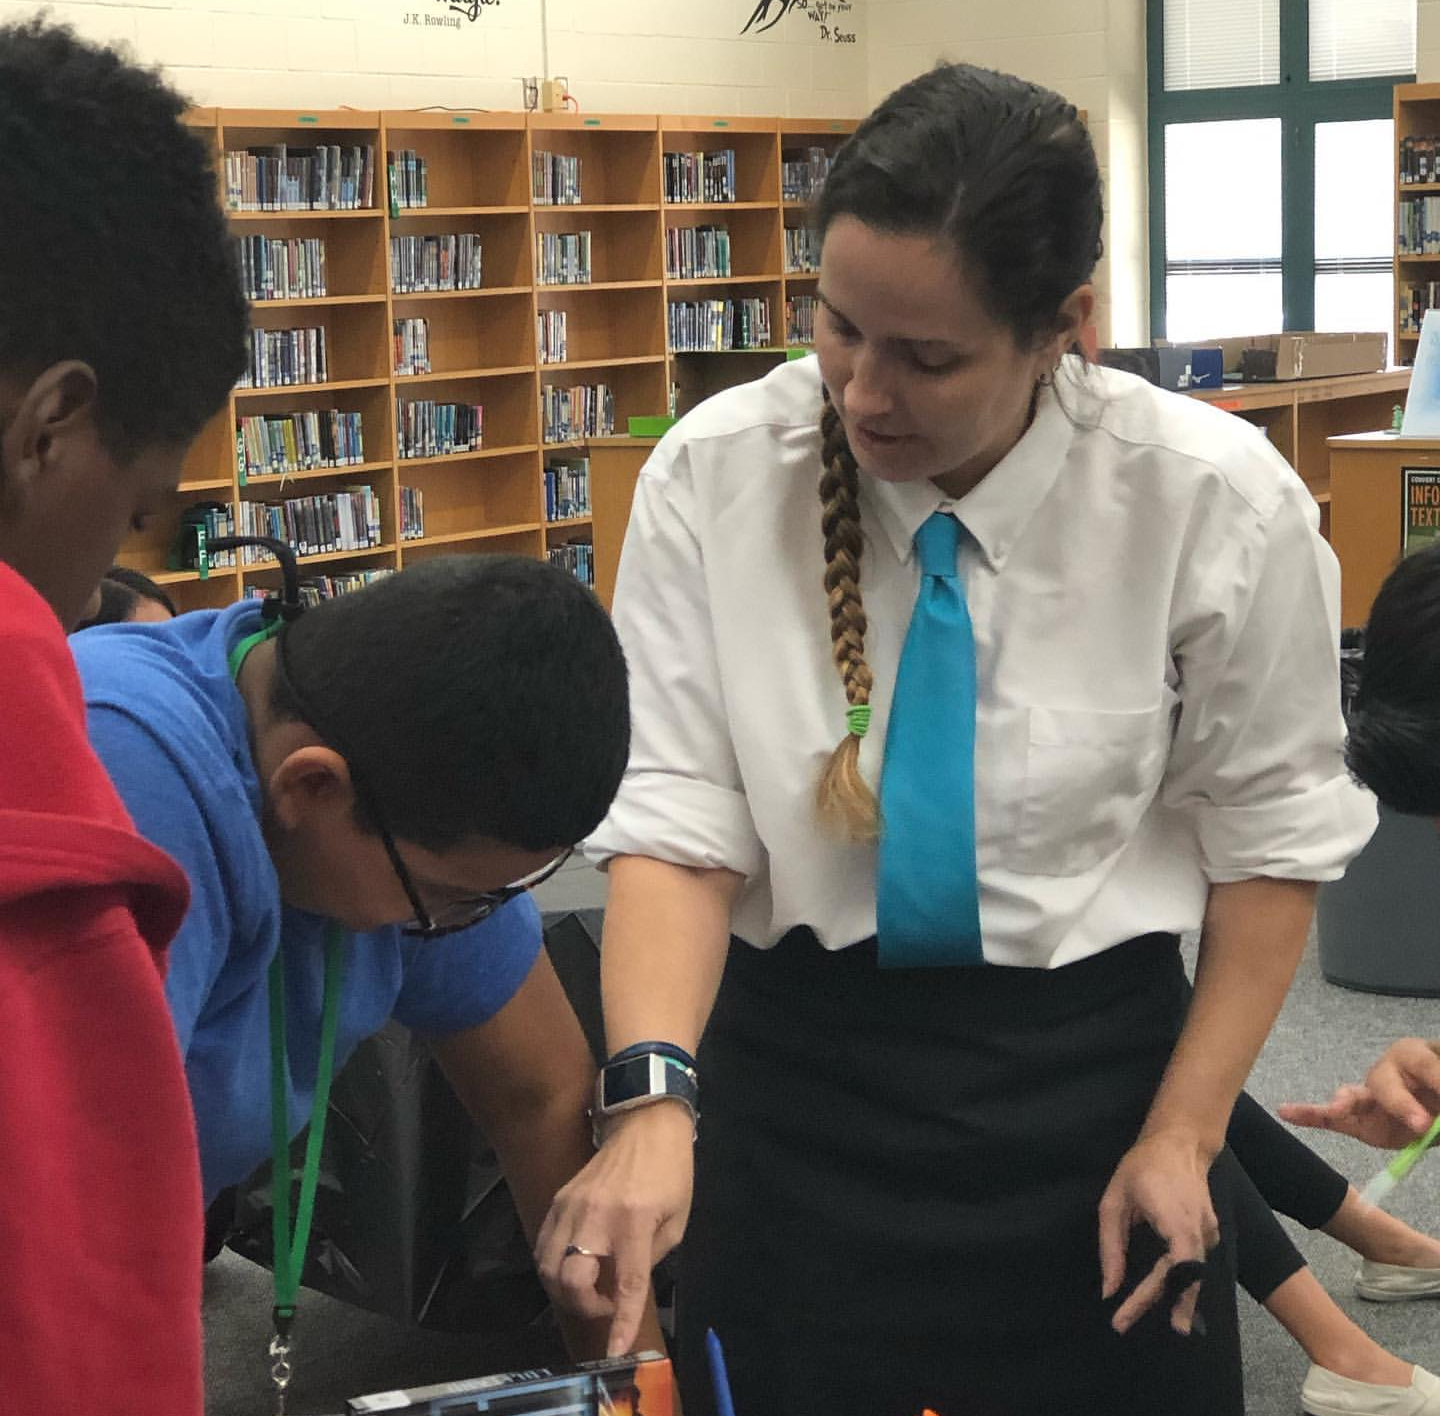 Ms. Breedlove helping some students during the book tasting